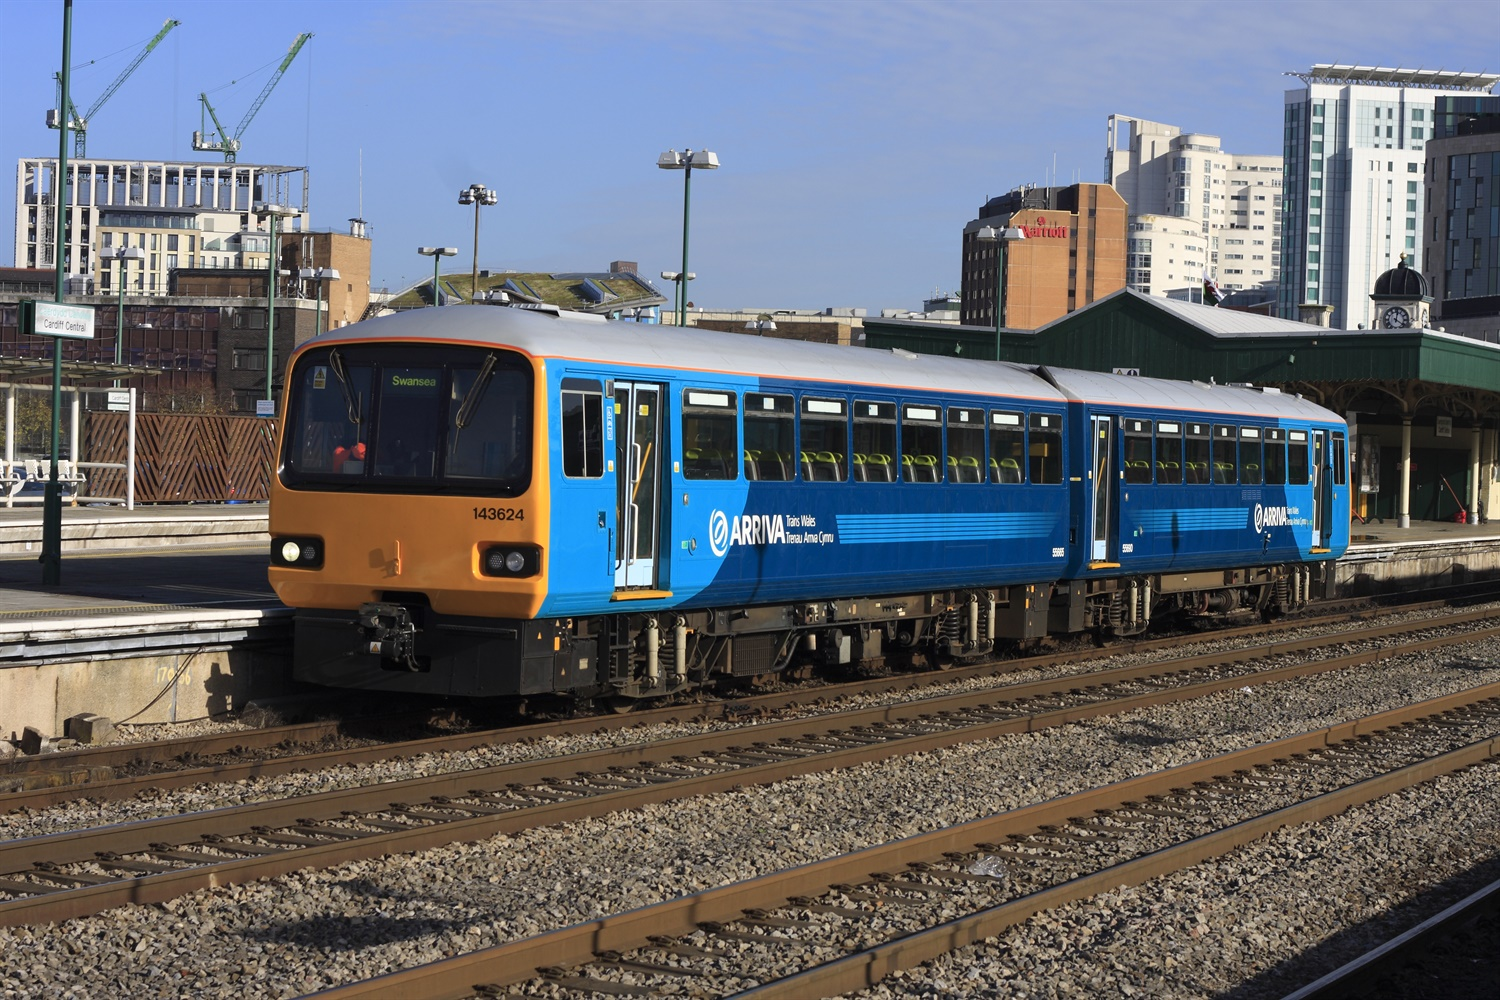 ATW pays out £2.4m in penalties for delayed and cancelled services